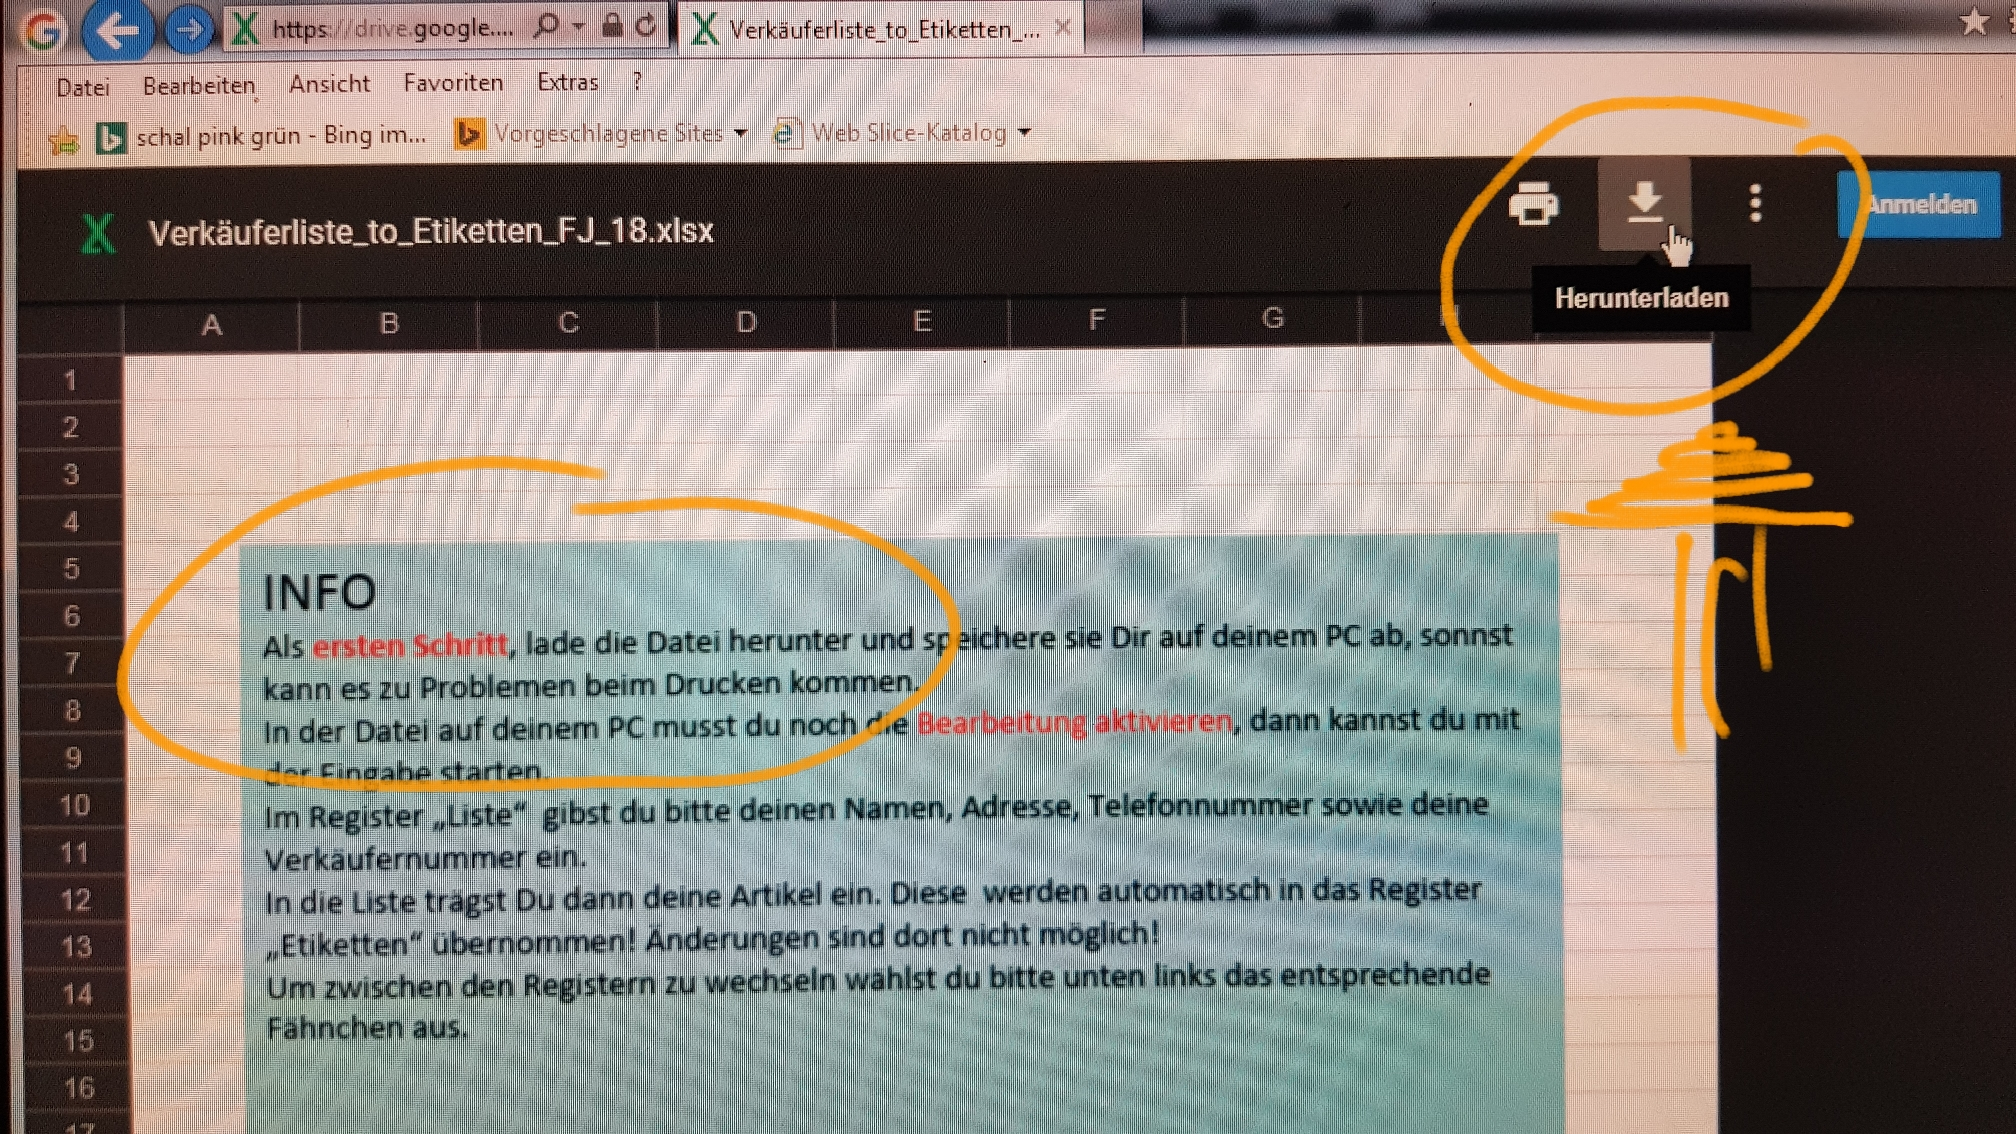 Großzügig Gartner Etikettenvorlagen Fotos - Entry Level Resume ...